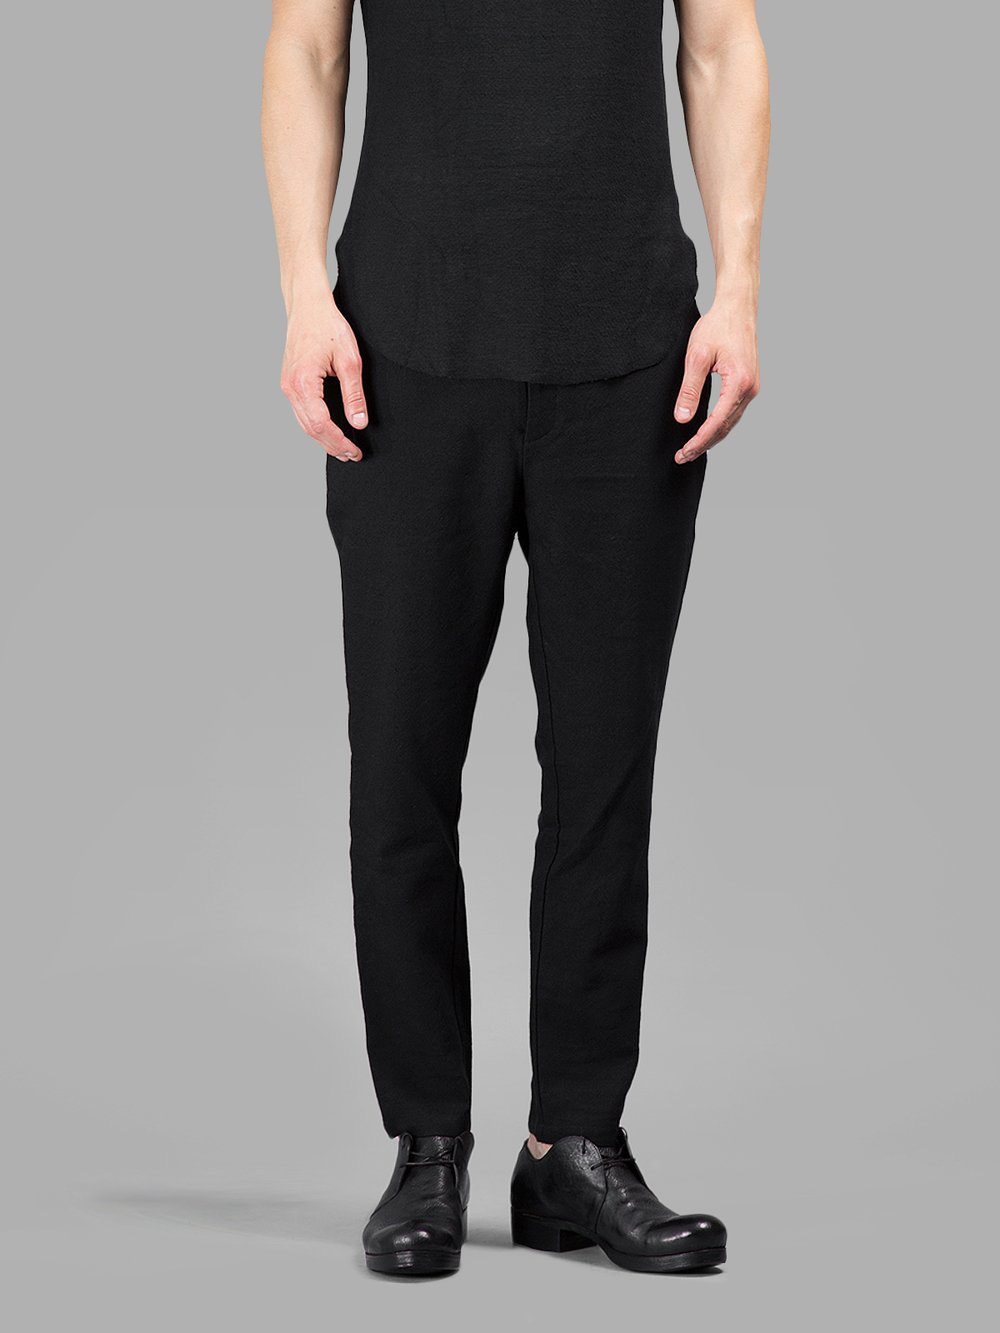 Image of ALEKSANDR MANAMIS Trousers